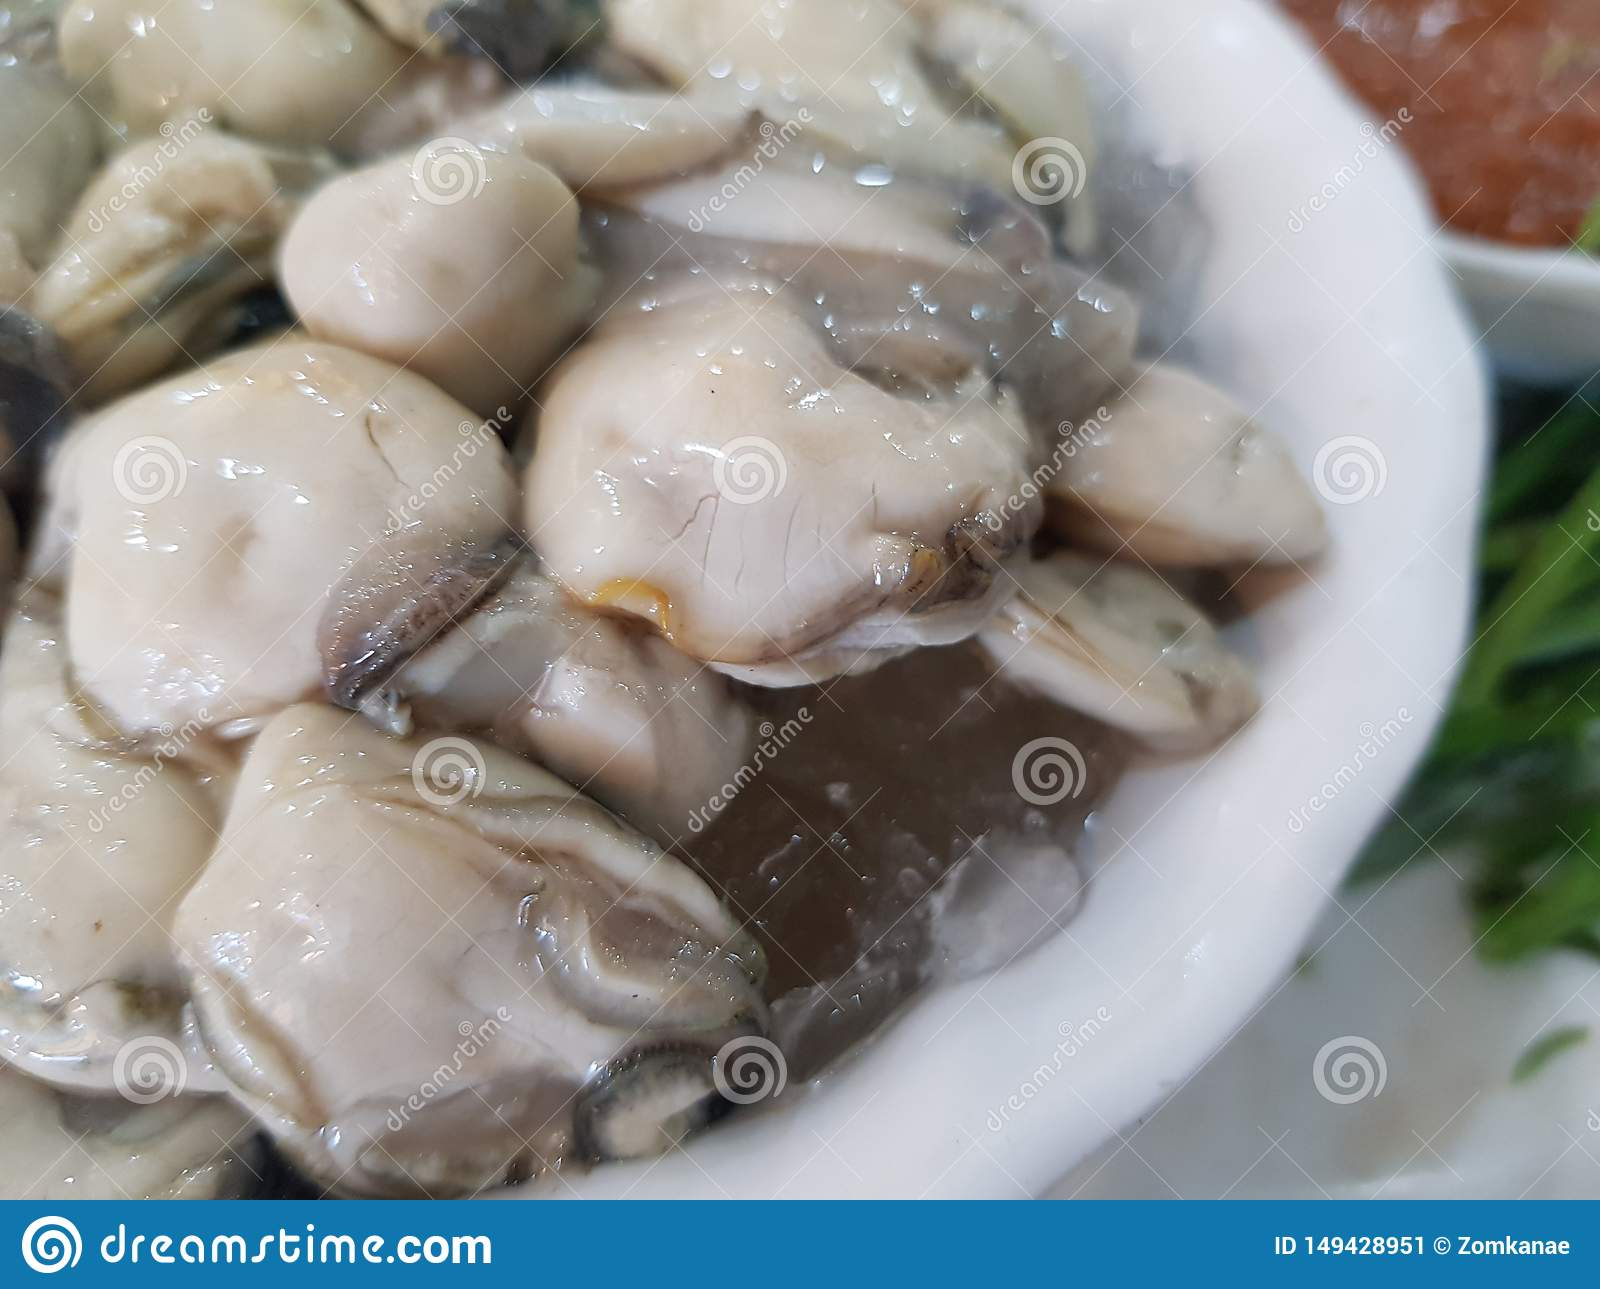 Oysters, health benefits  Enhance sexual function, stimulate the reproductive system